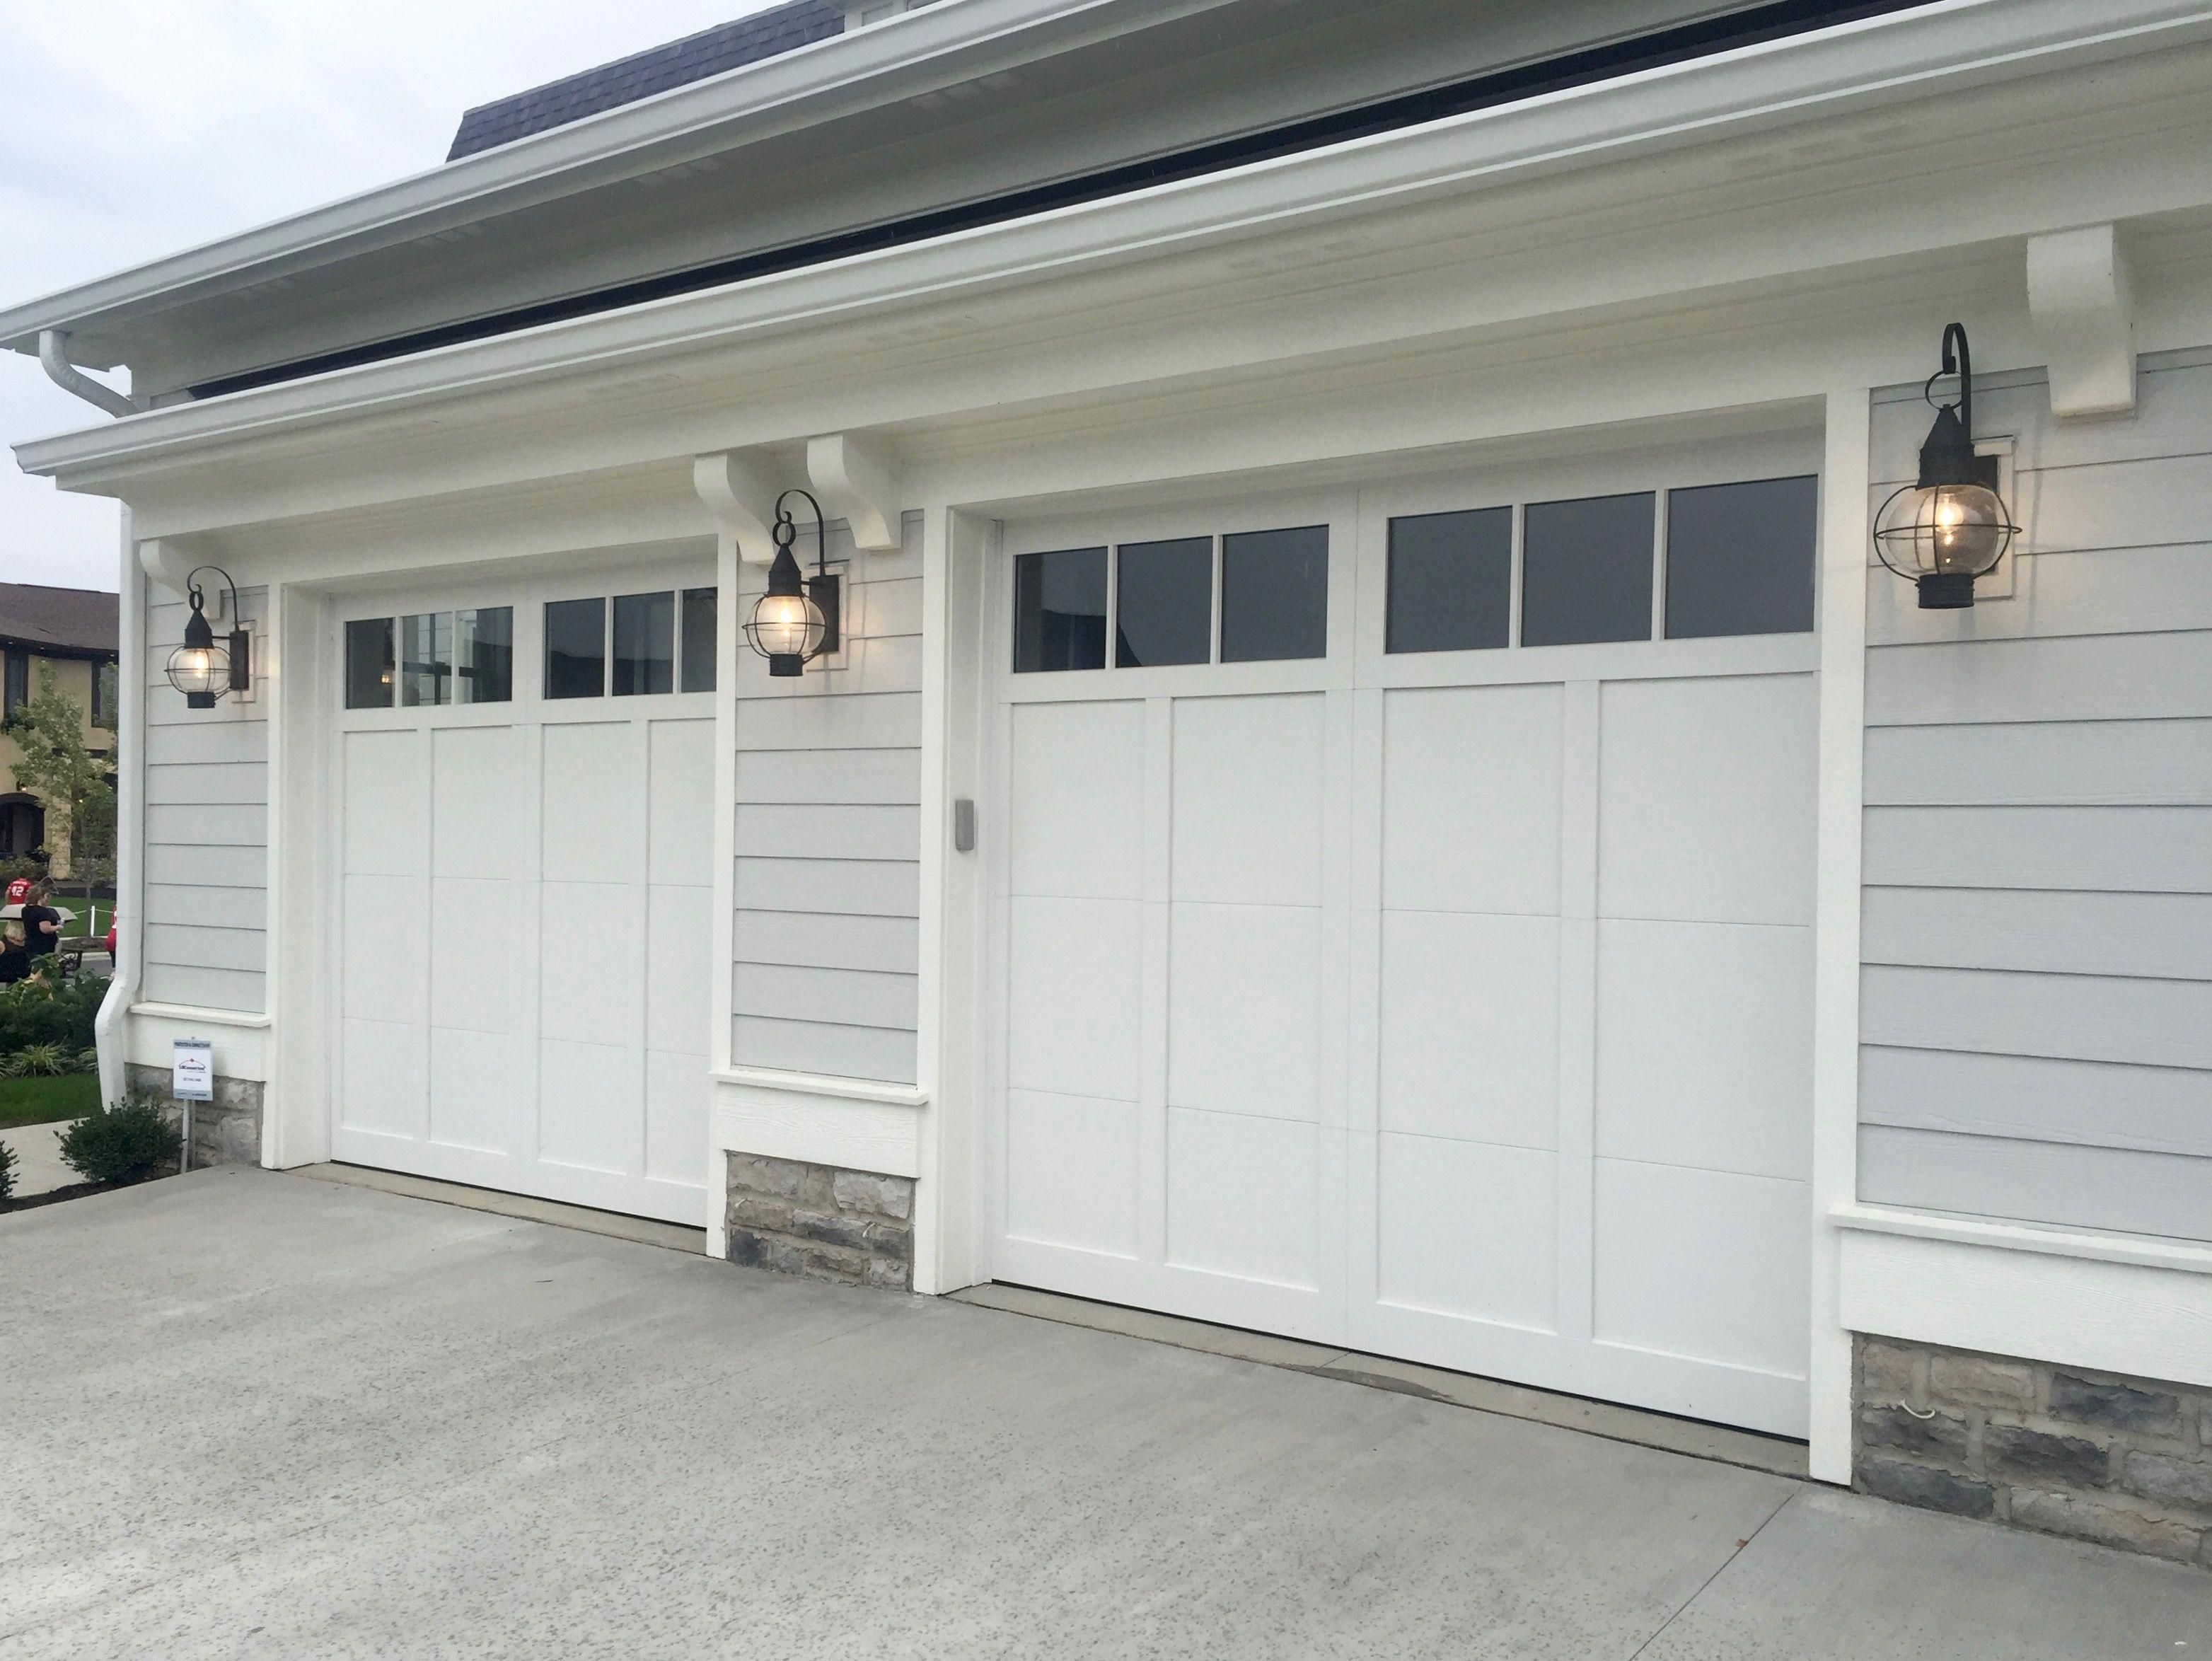 Wonderful Black Garage Doors Check Out Our Content Article For A Lot More Inspirations Blackgaragedoors Garage Doors Single Garage Door Garage Door Types